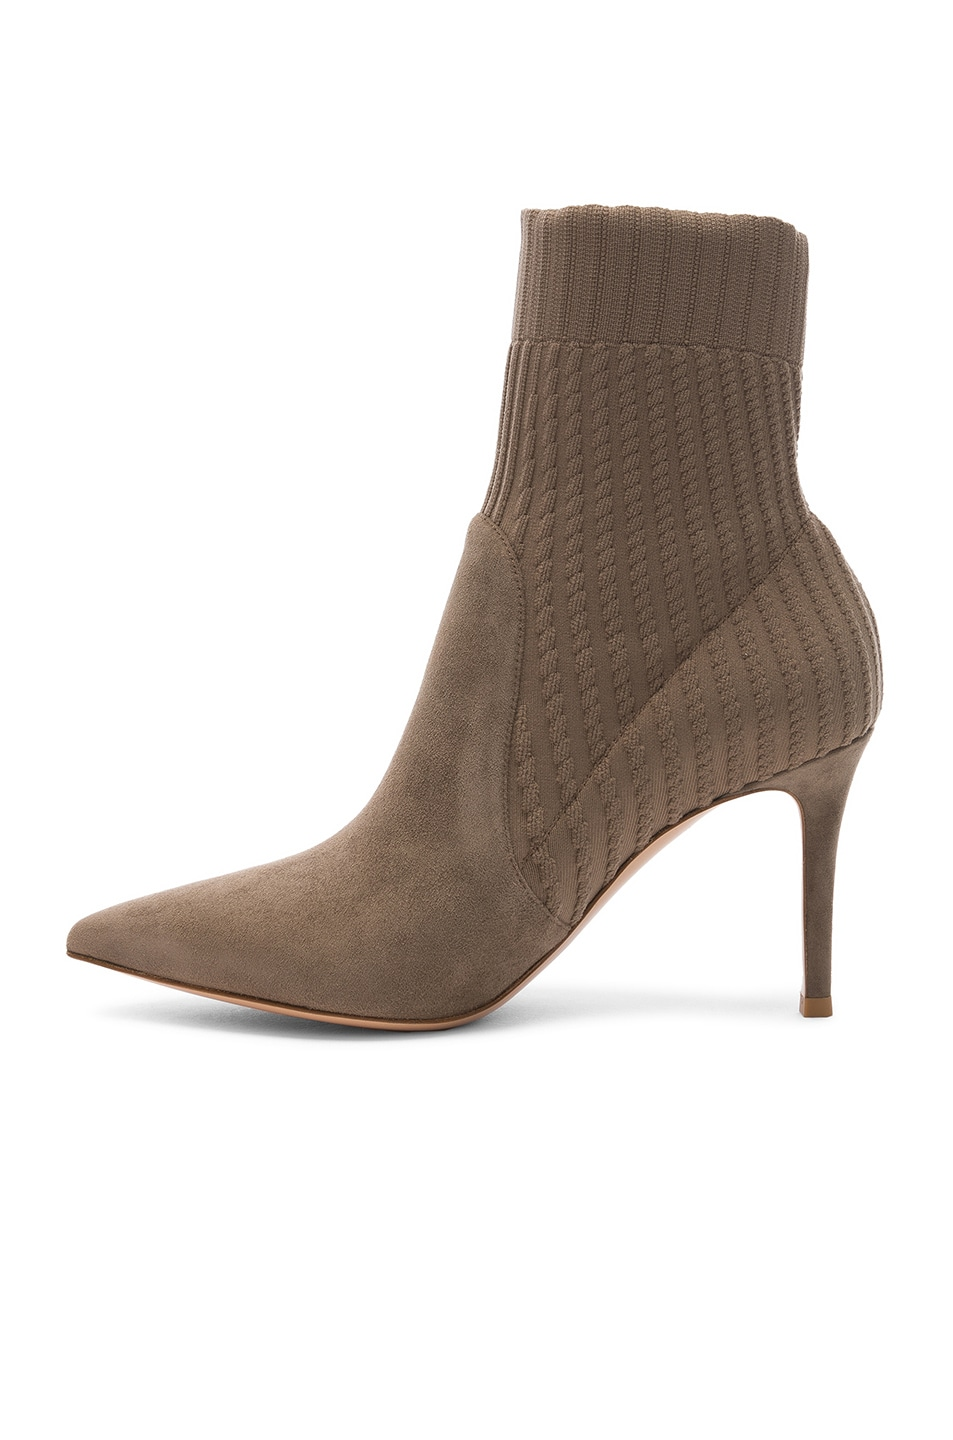 Image 5 of Gianvito Rossi Suede & Knit Katie Ankle Boots in Mud & Bisque